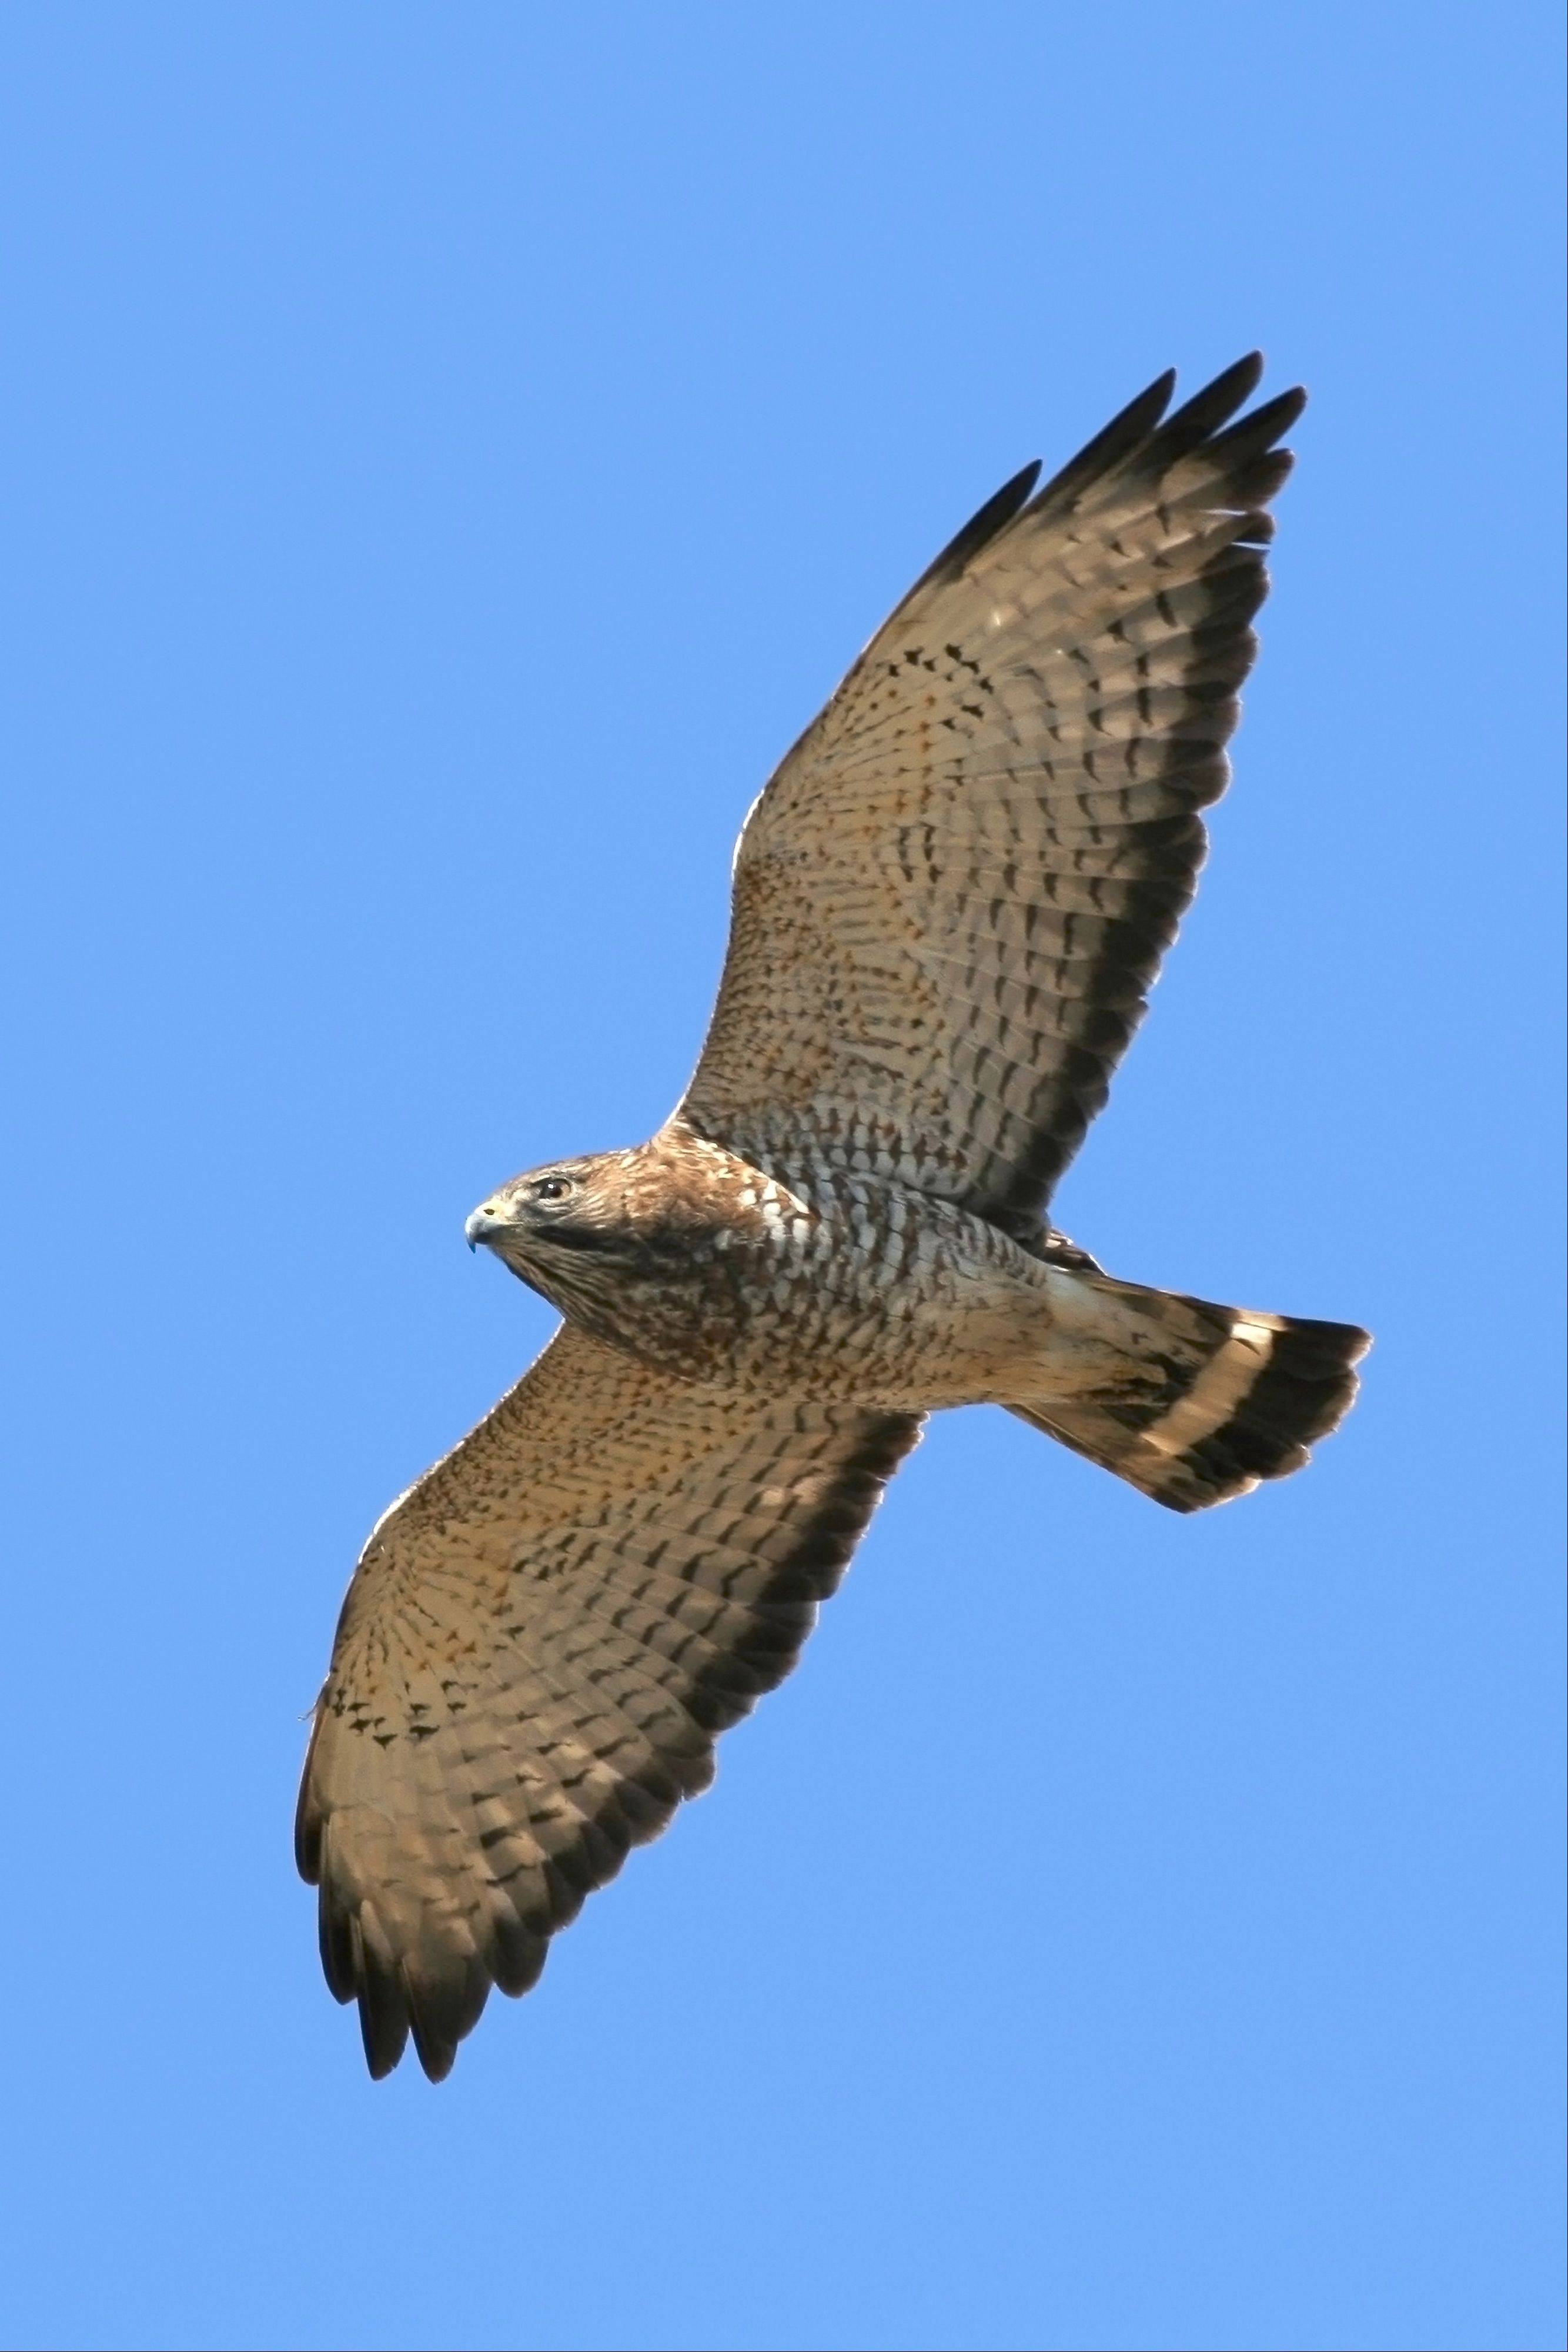 Migrating broad-winged hawks are common this time of year and are sometimes seen in great numbers. Most are heading to Central or South America.